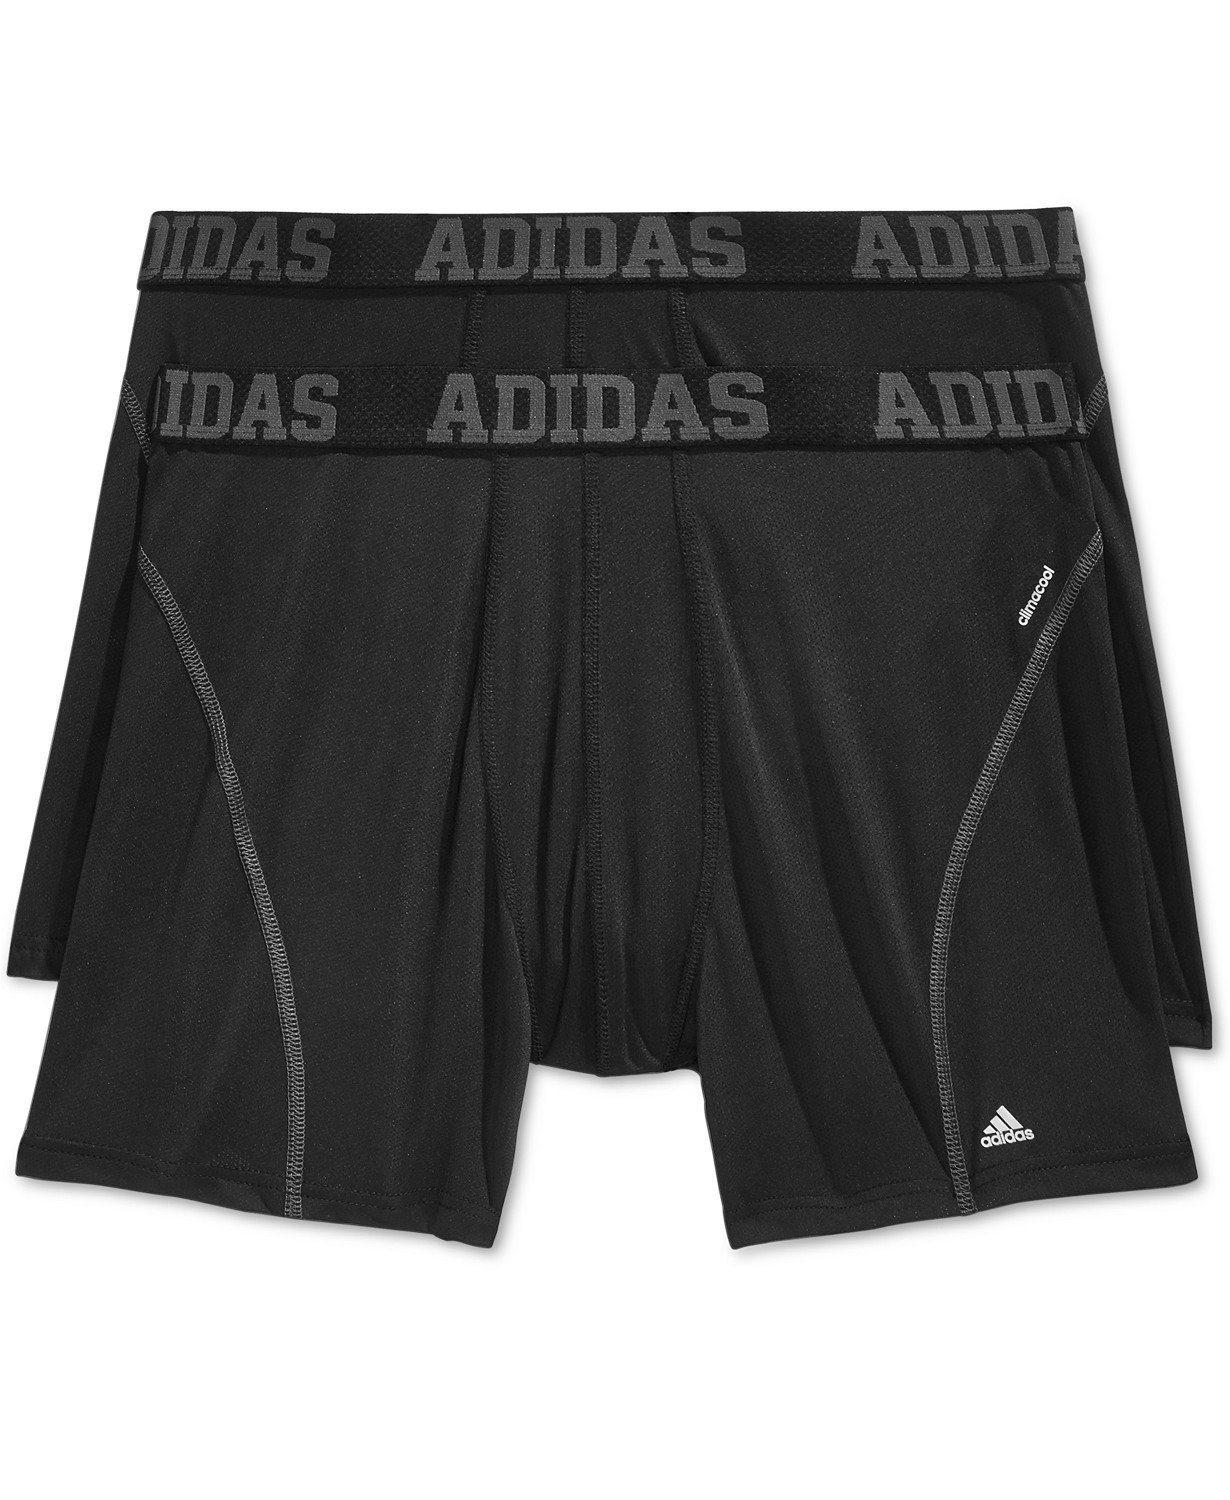 adidas Men's Sport Performance Climacool Boxer Brief Underwear (2-Pack), Black/Thunder Grey, Medium by adidas